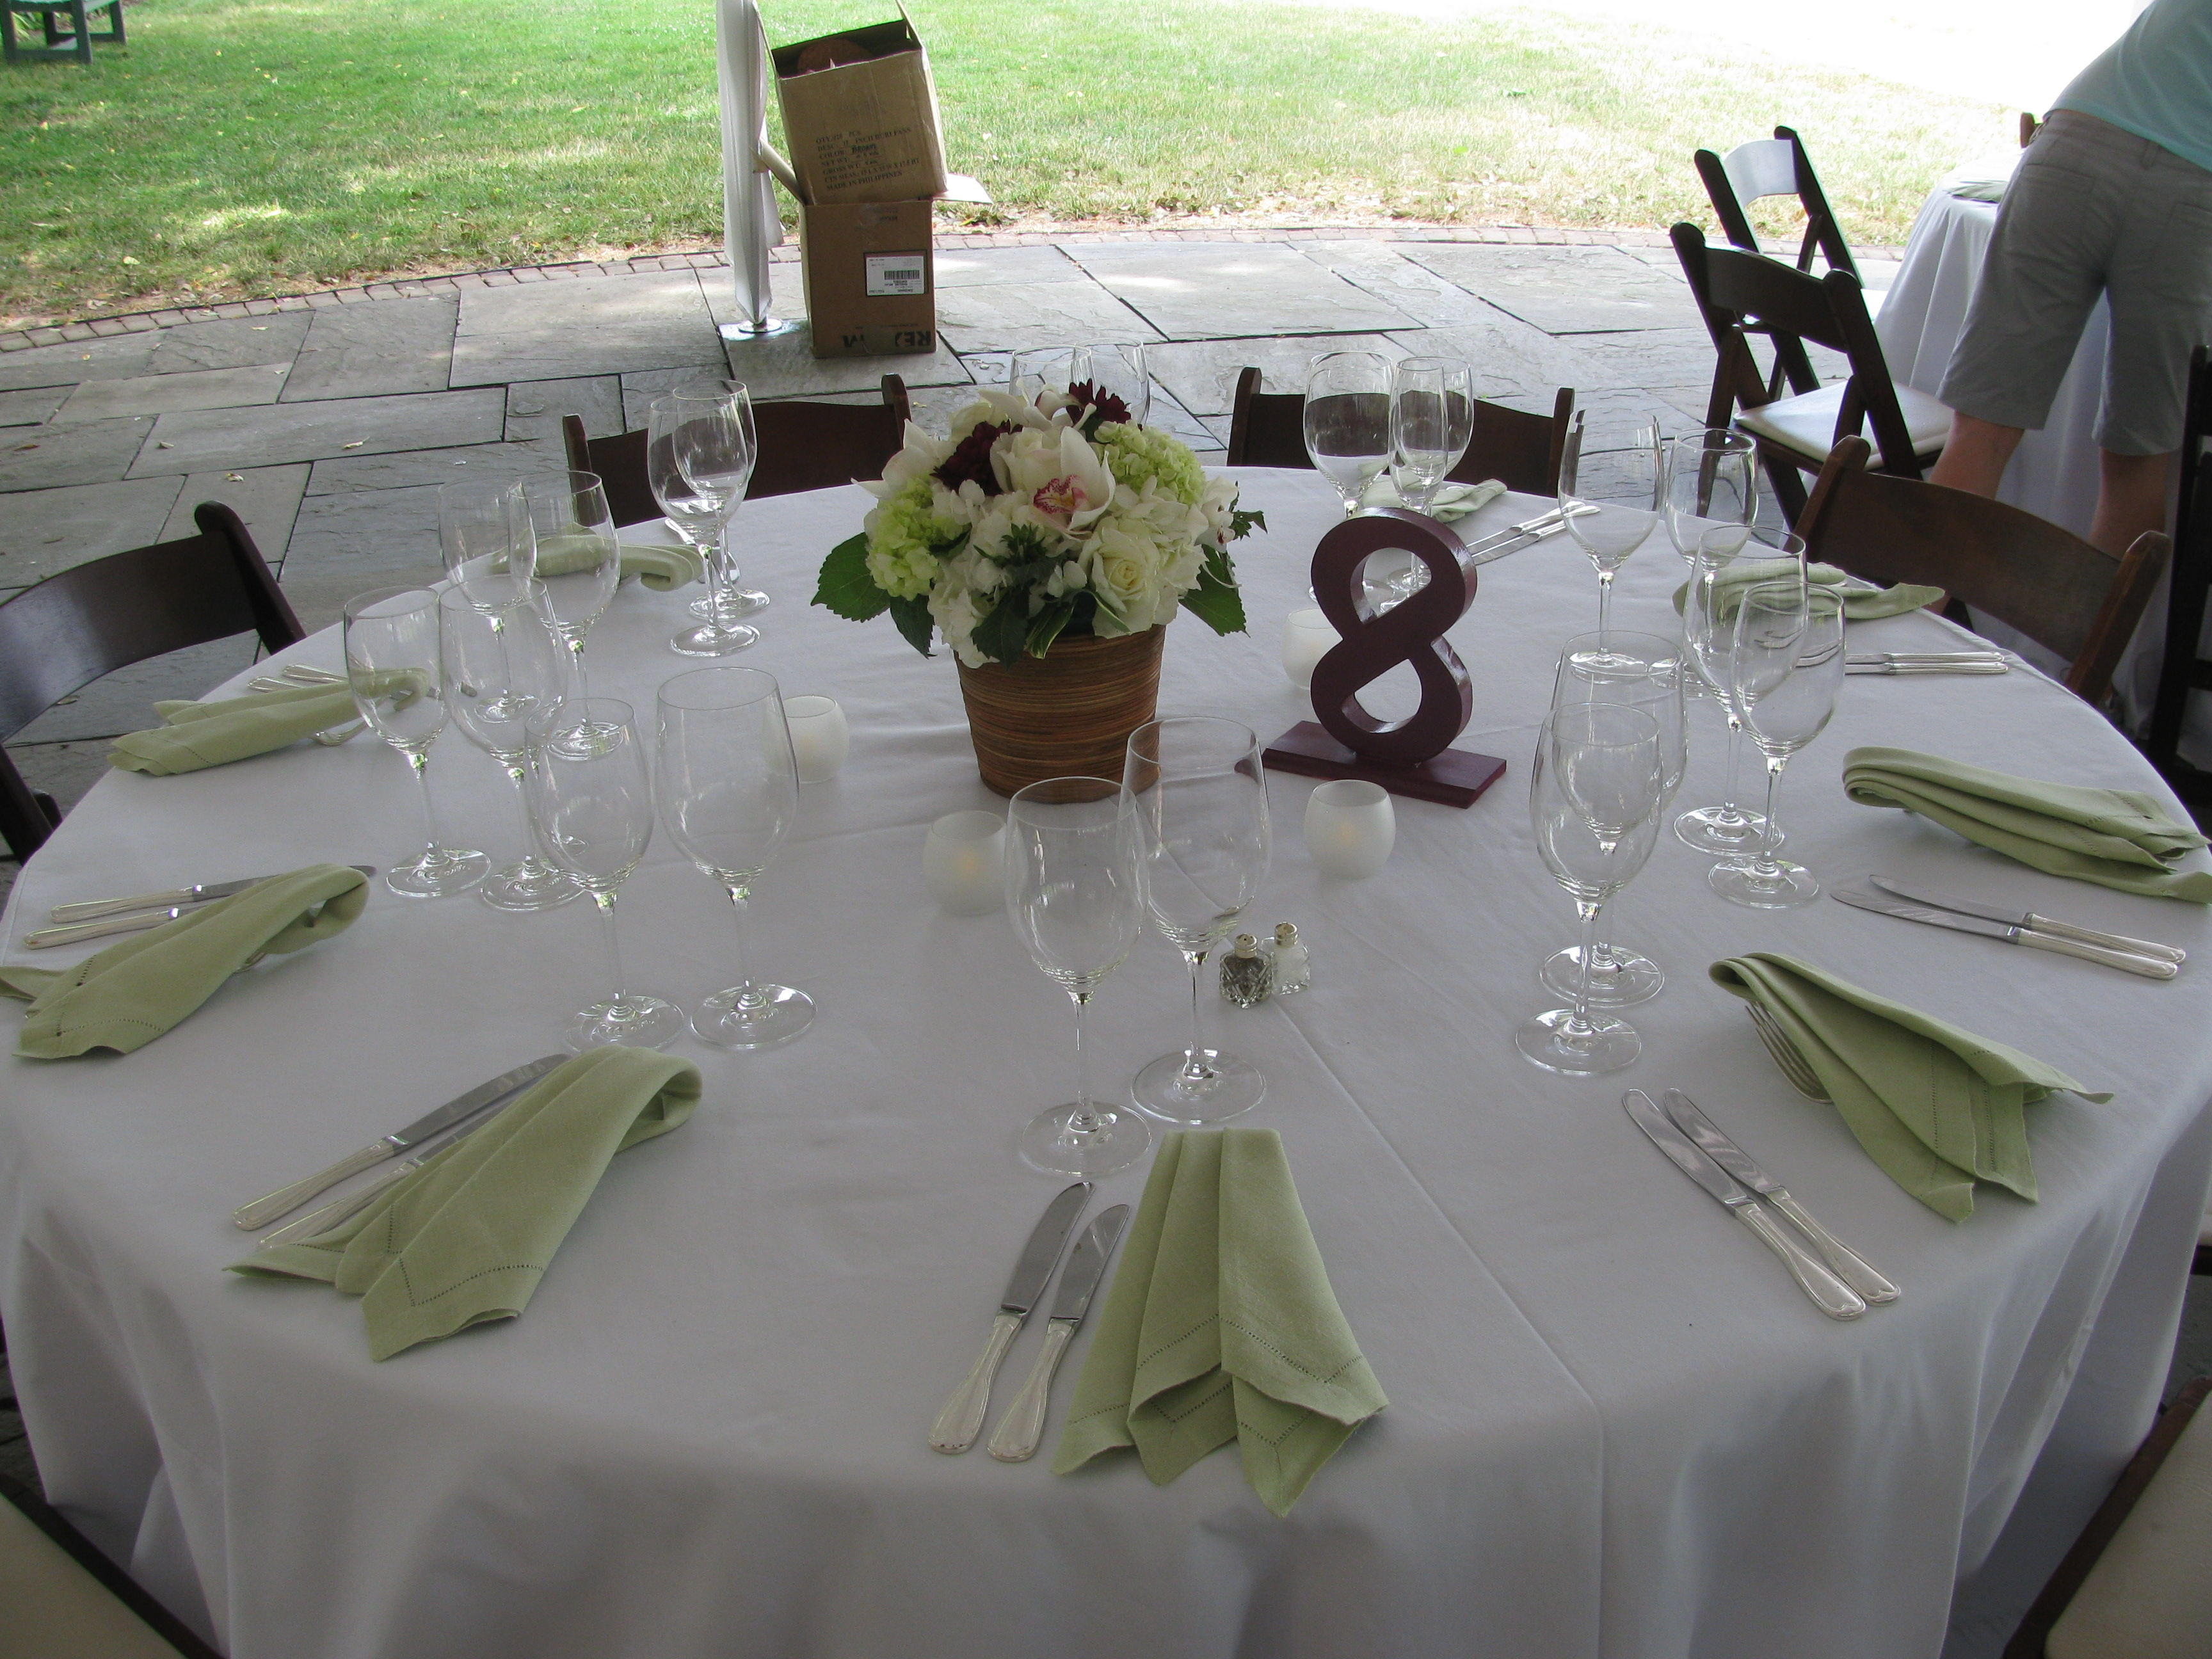 sneak peek river farm wedding napkins for wedding The green napkins and white linen really make the arrangement POP We also loved the table numbers which were actually made by the bride and groom